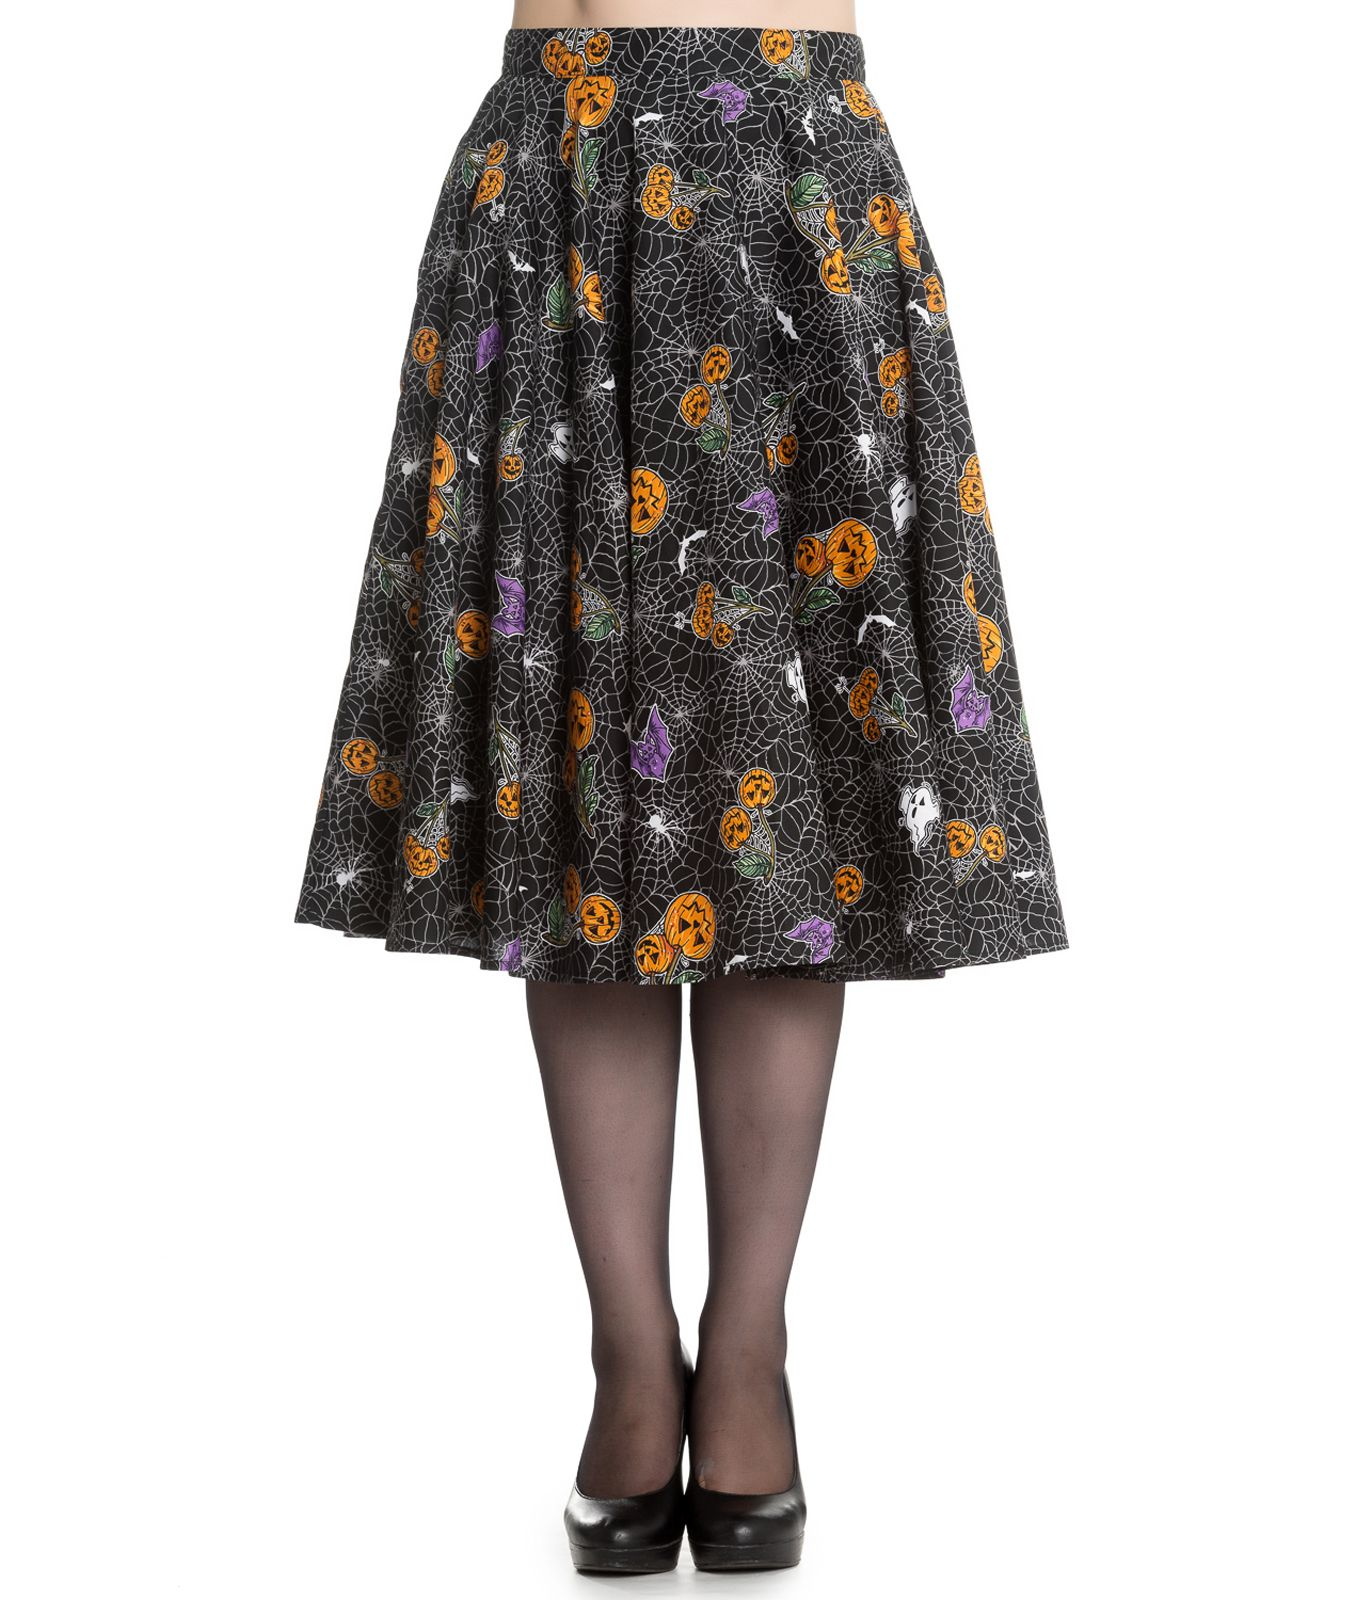 50s style skirt with Halloween themed pattern of orange pumpkin cherries 4238dc46b